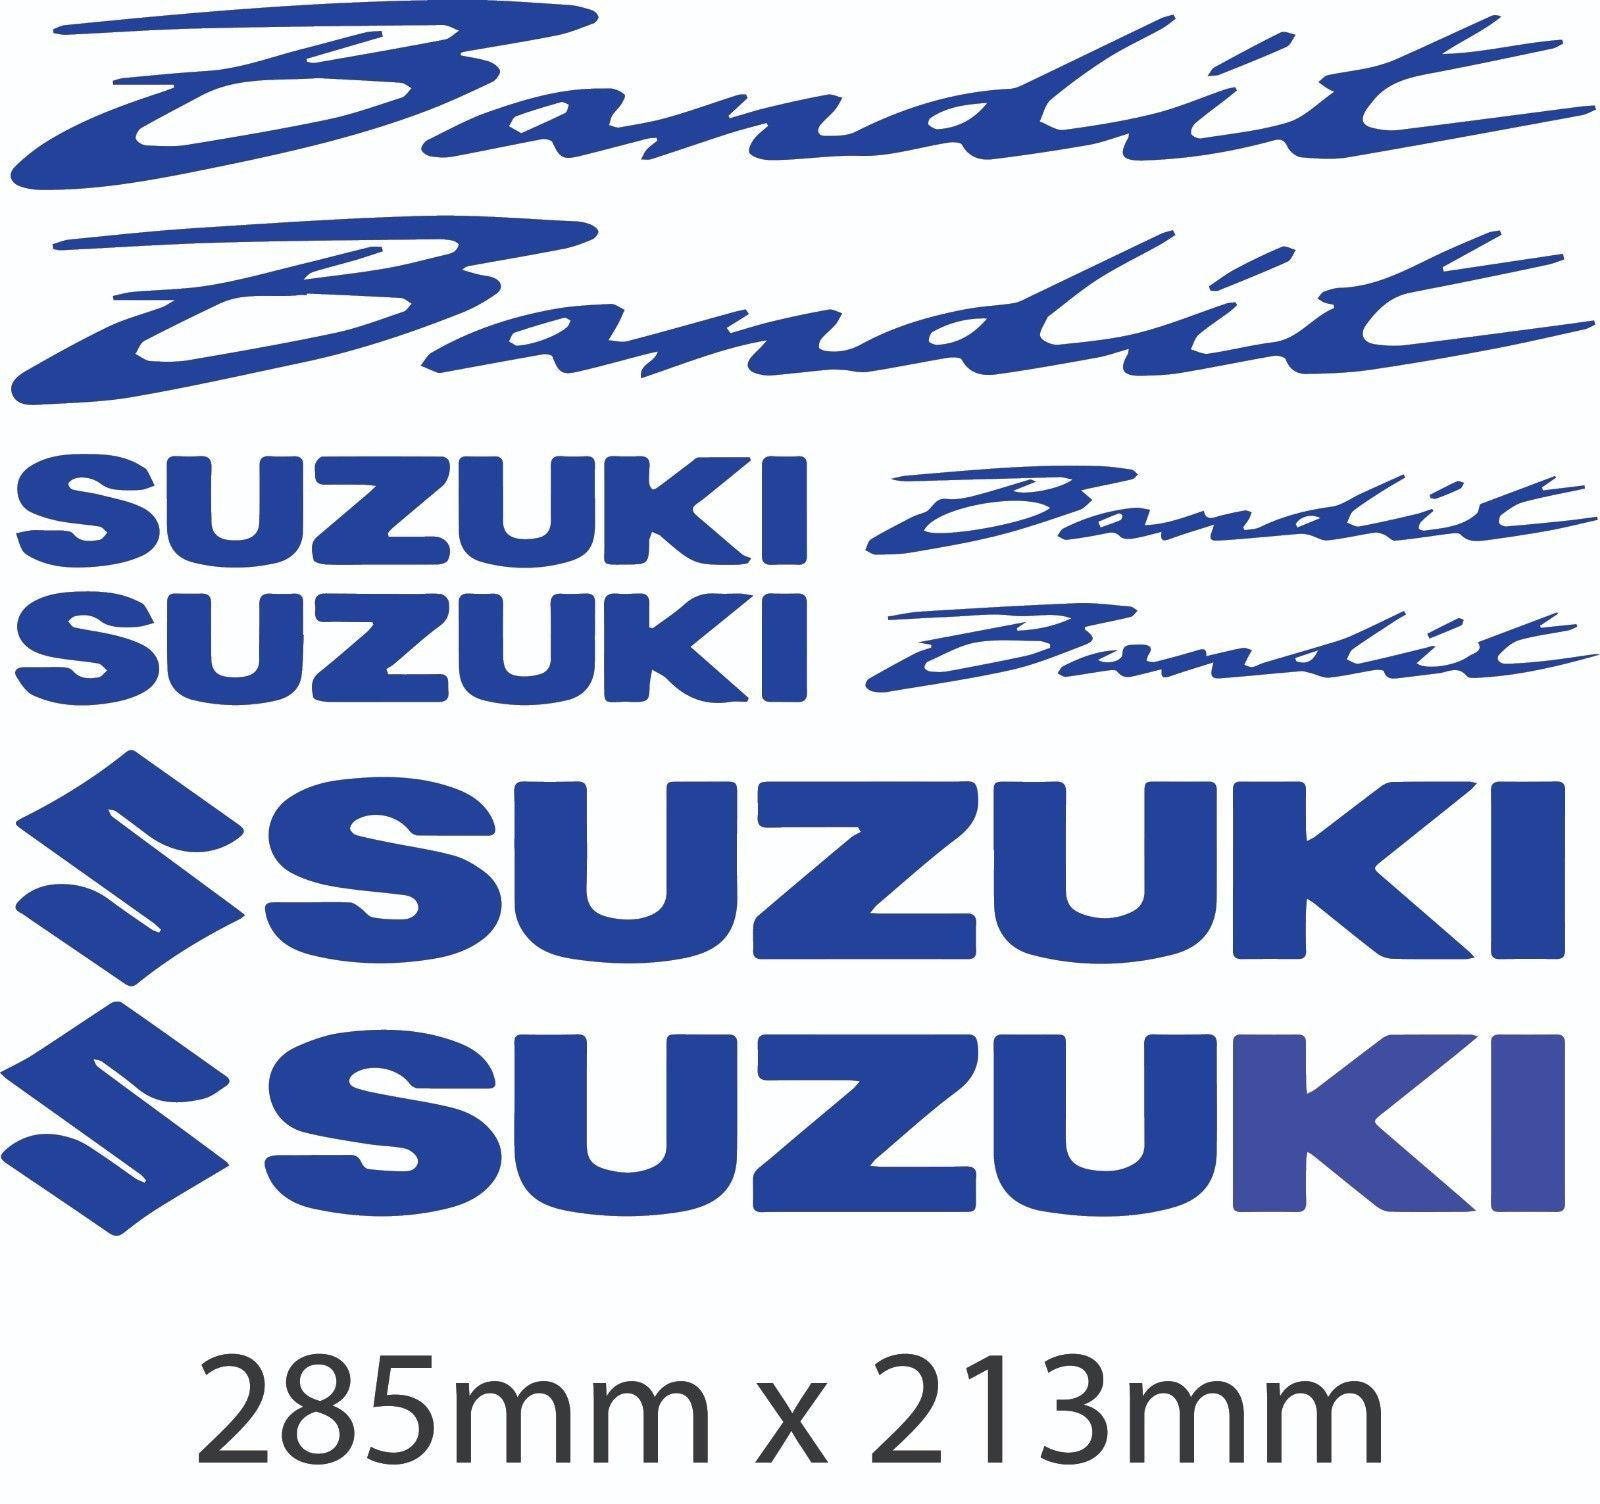 Suzuki Bandit Motorbike Decals Belly Pan Fairings Helmet Motorcycle Sticker Tank